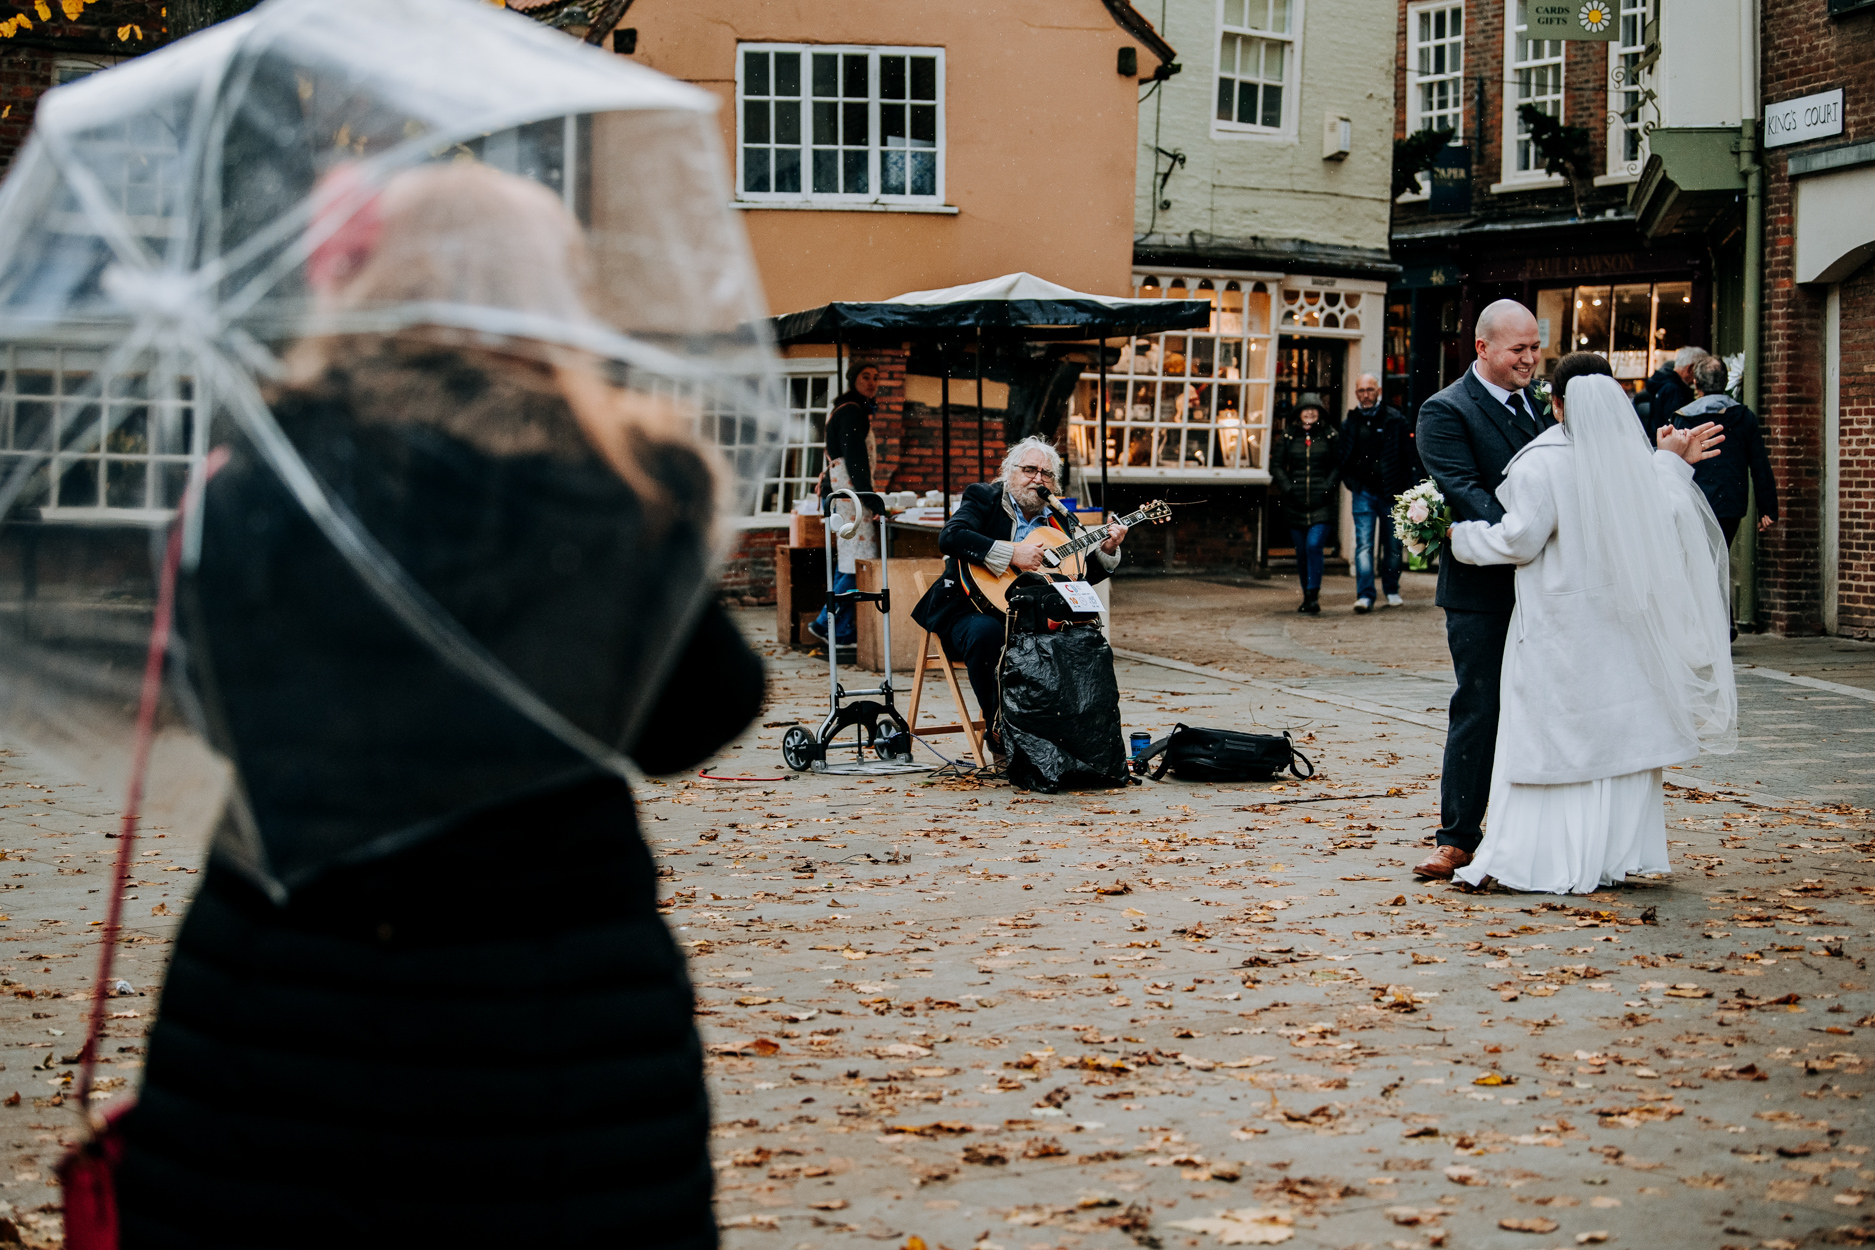 The Streets Of York - Wedding Photos | The newlyweds dance in the rain